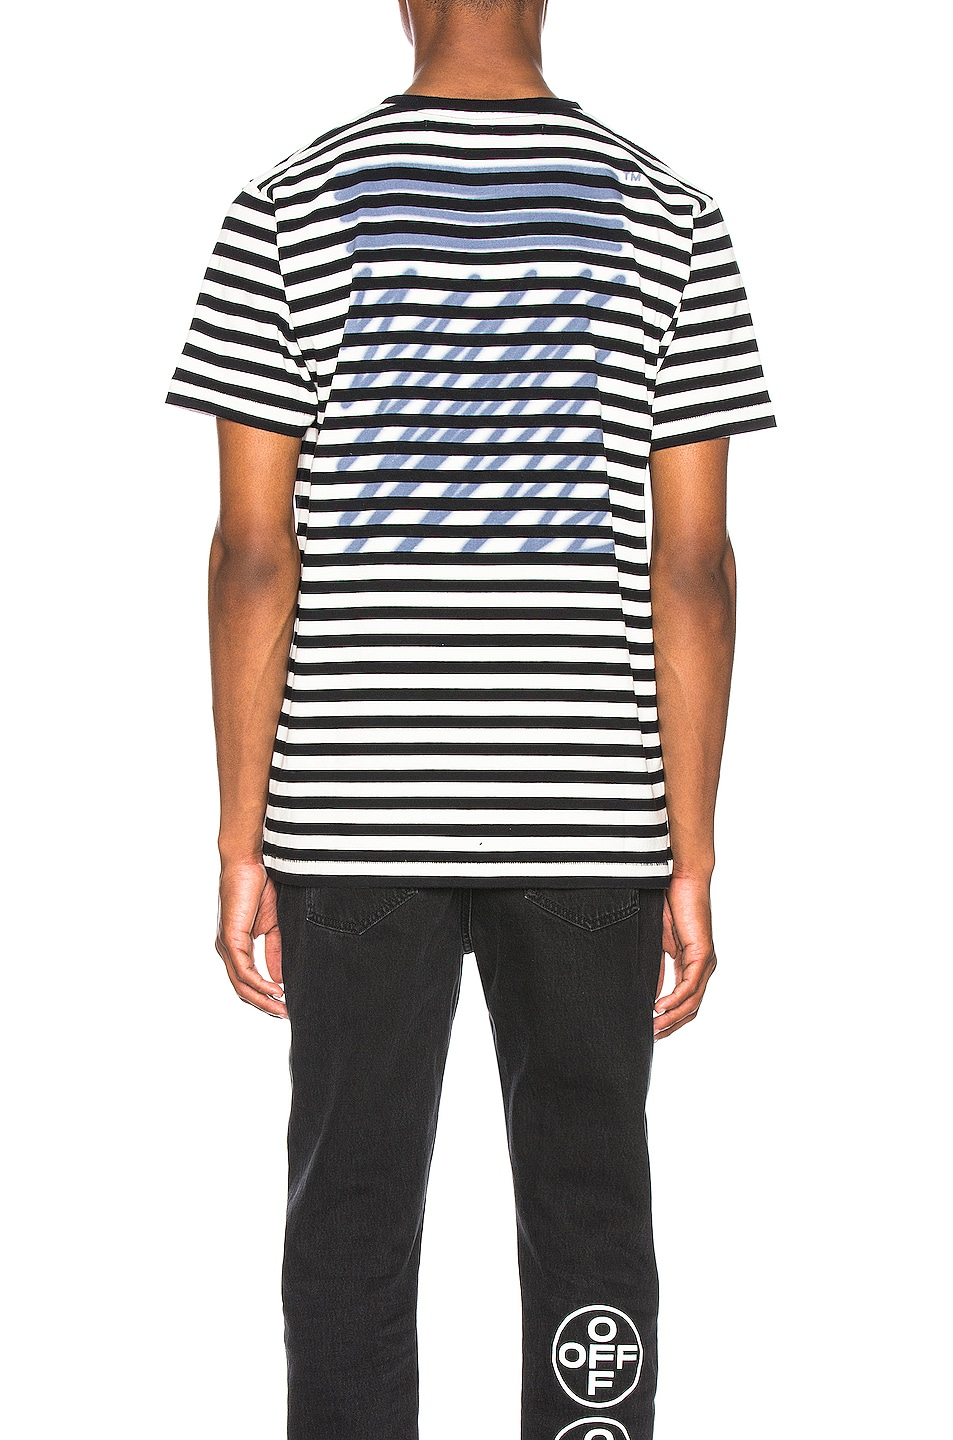 Image 3 of OFF-WHITE EXCLUSIVE Striped Tee in Black